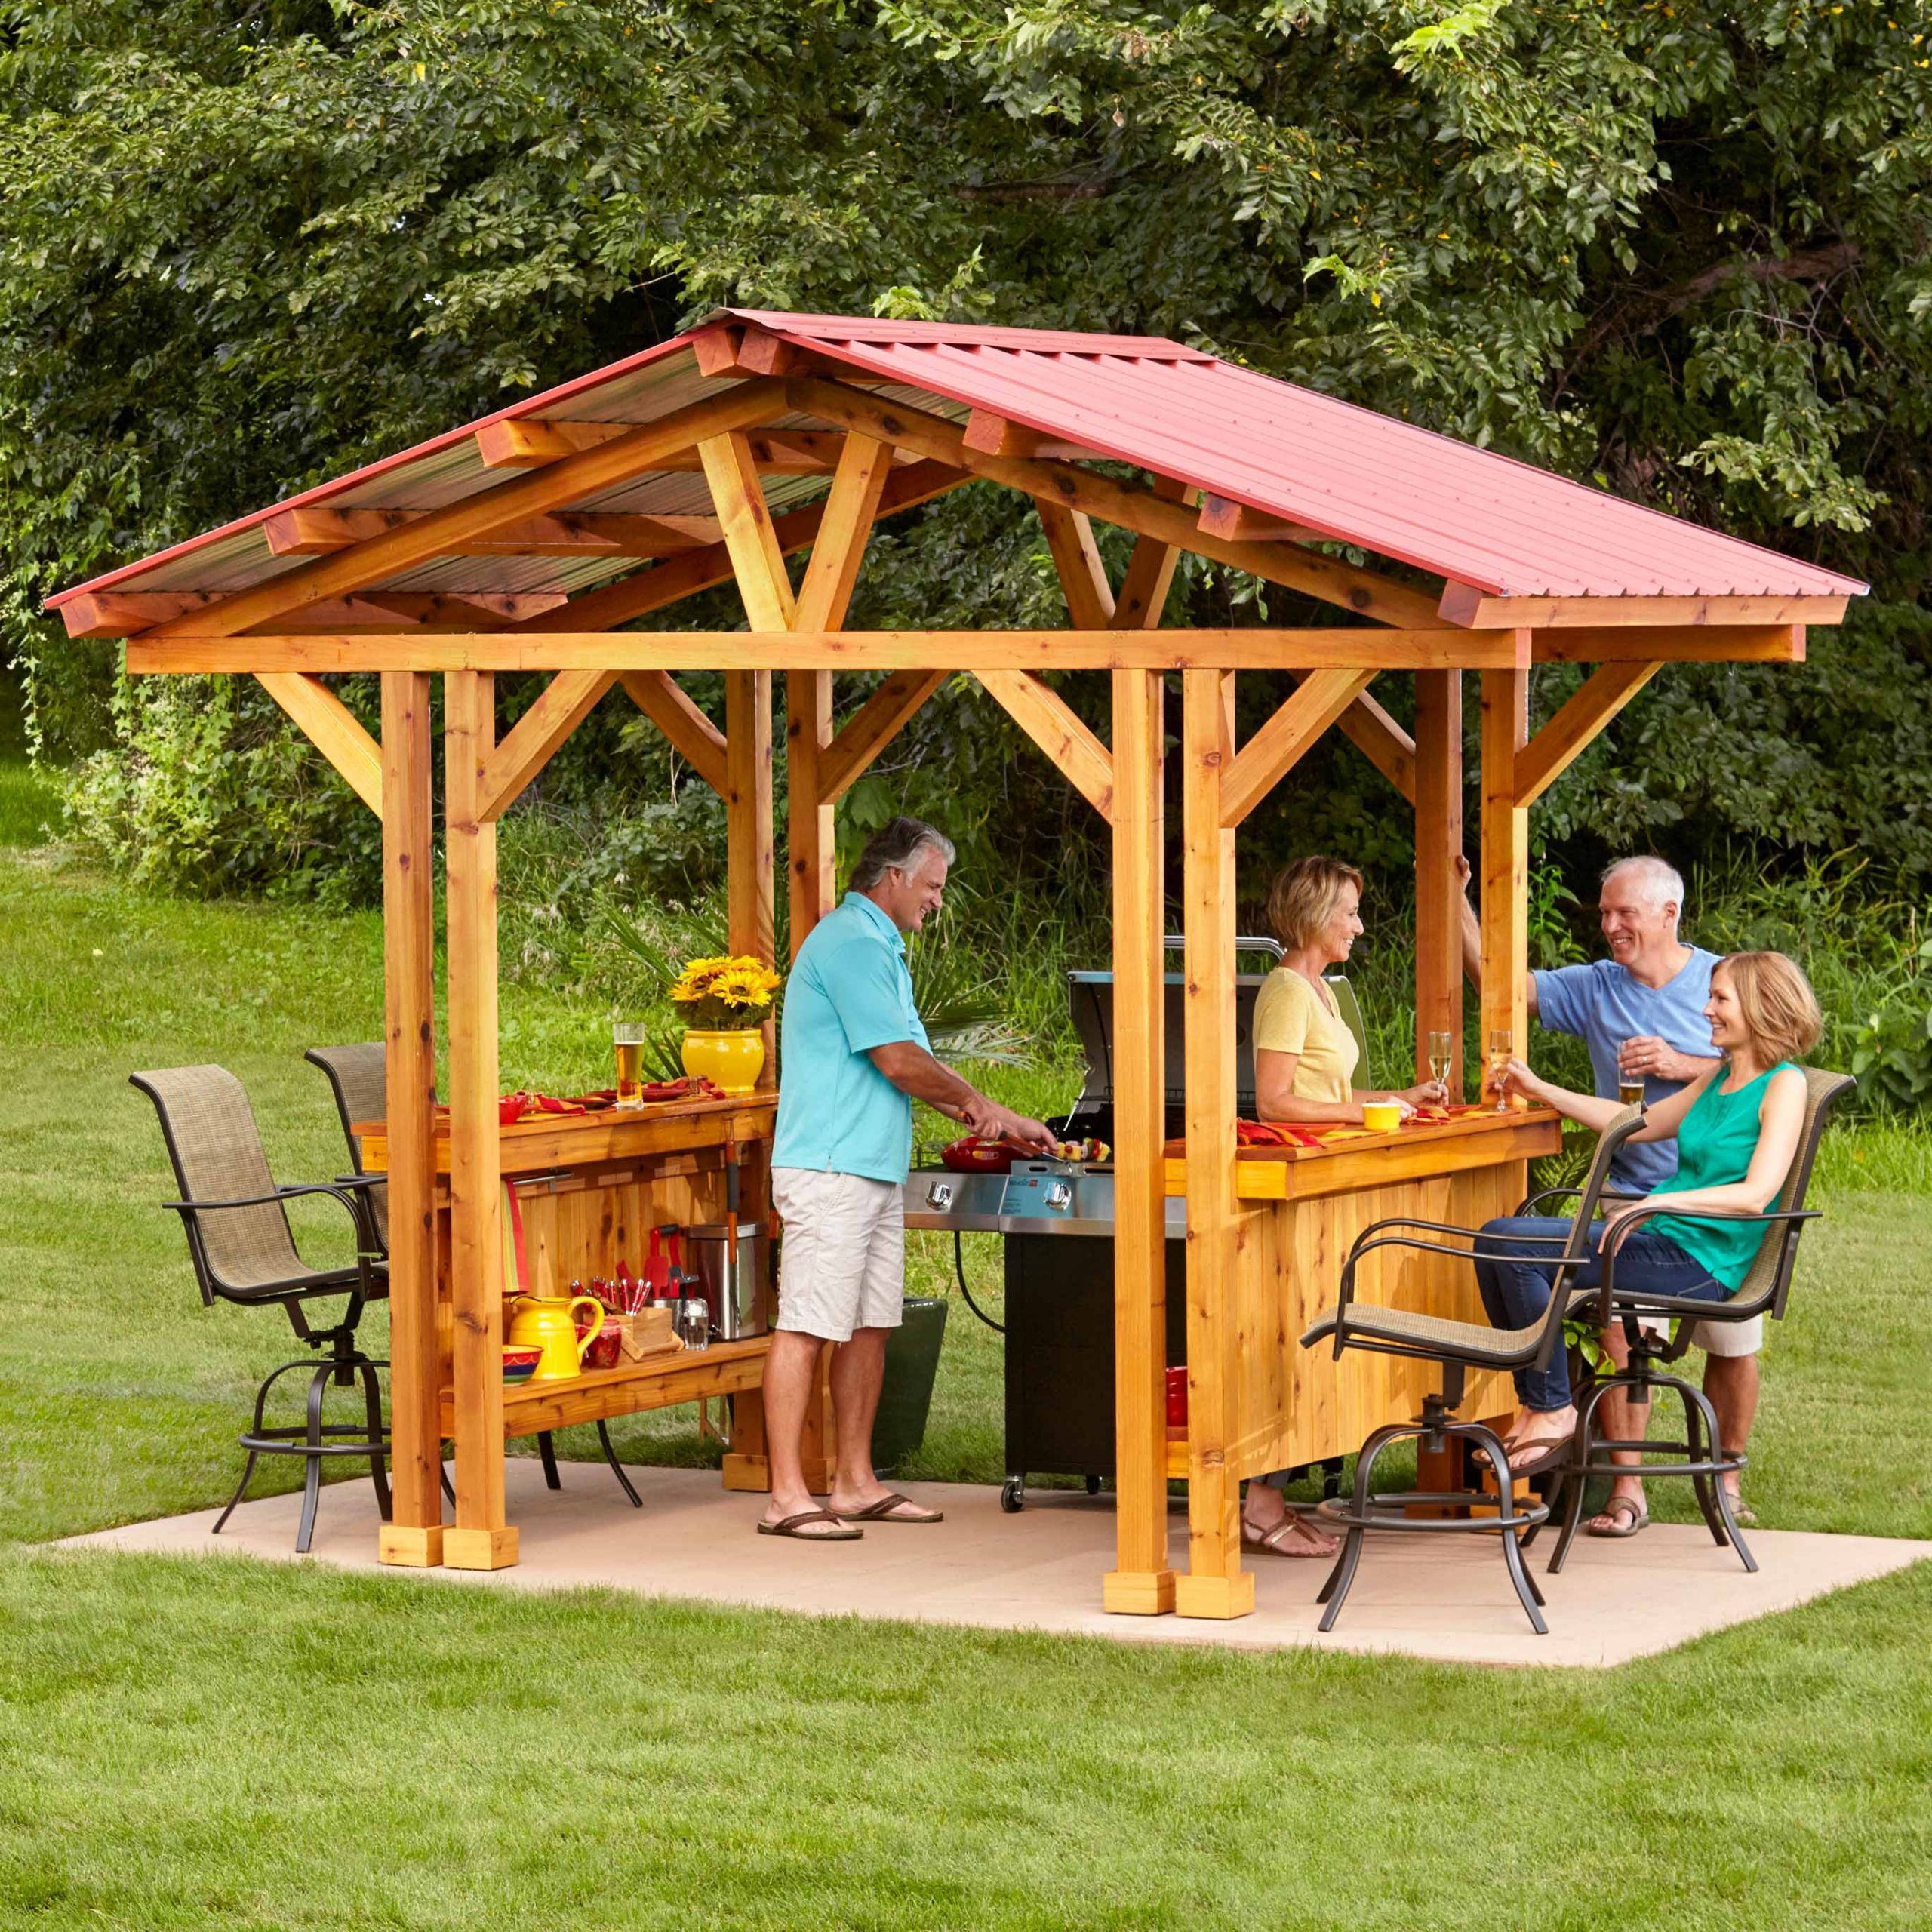 DIY Projects Outdoor  DIY Outdoor Projects that Add Value to Your Home